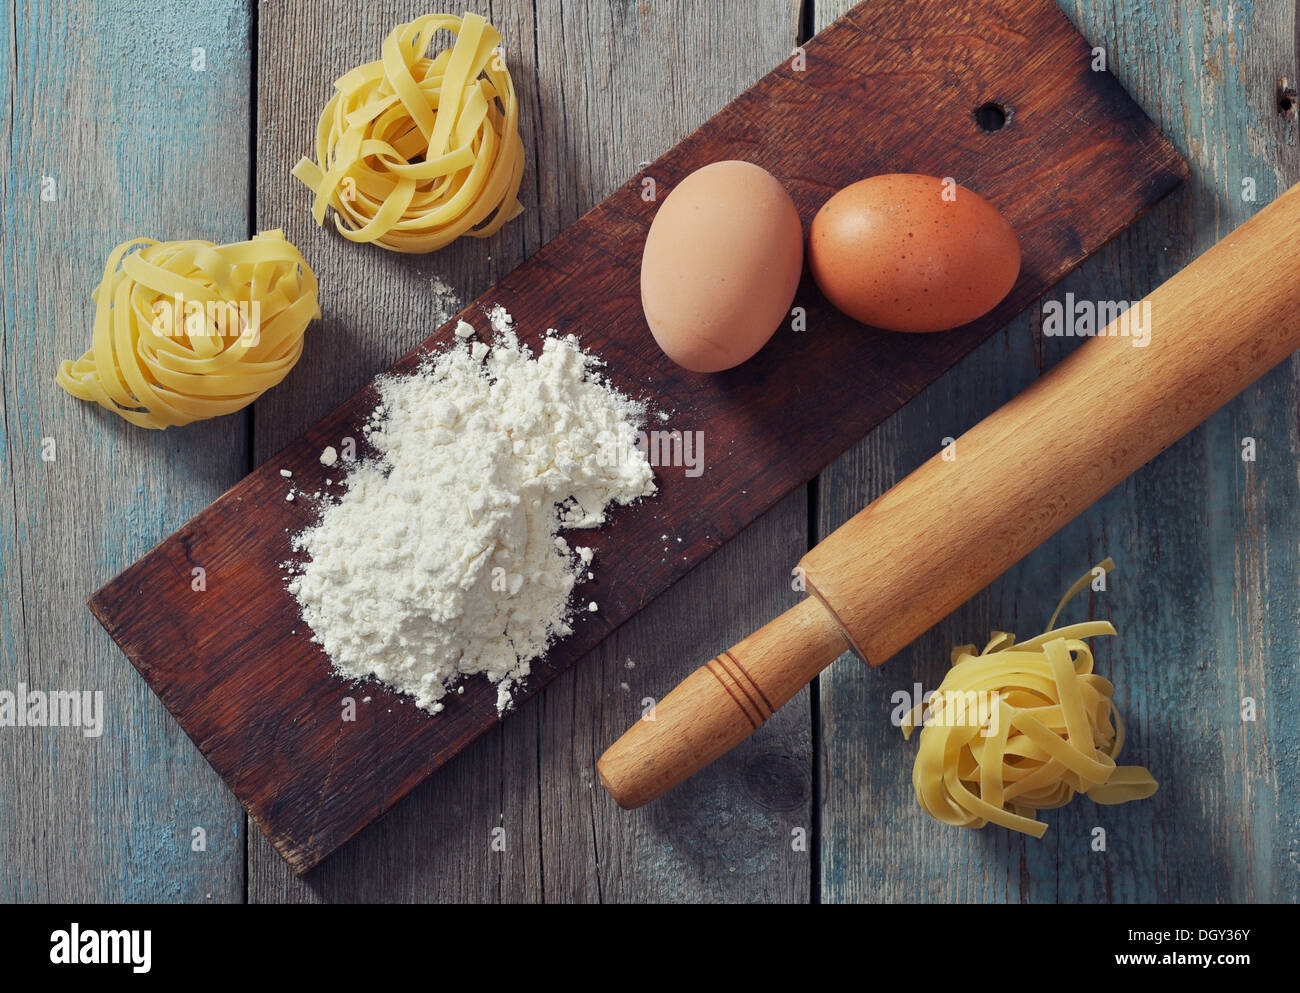 Flour, pasta and rolling-pin on wooden background  - Stock Image